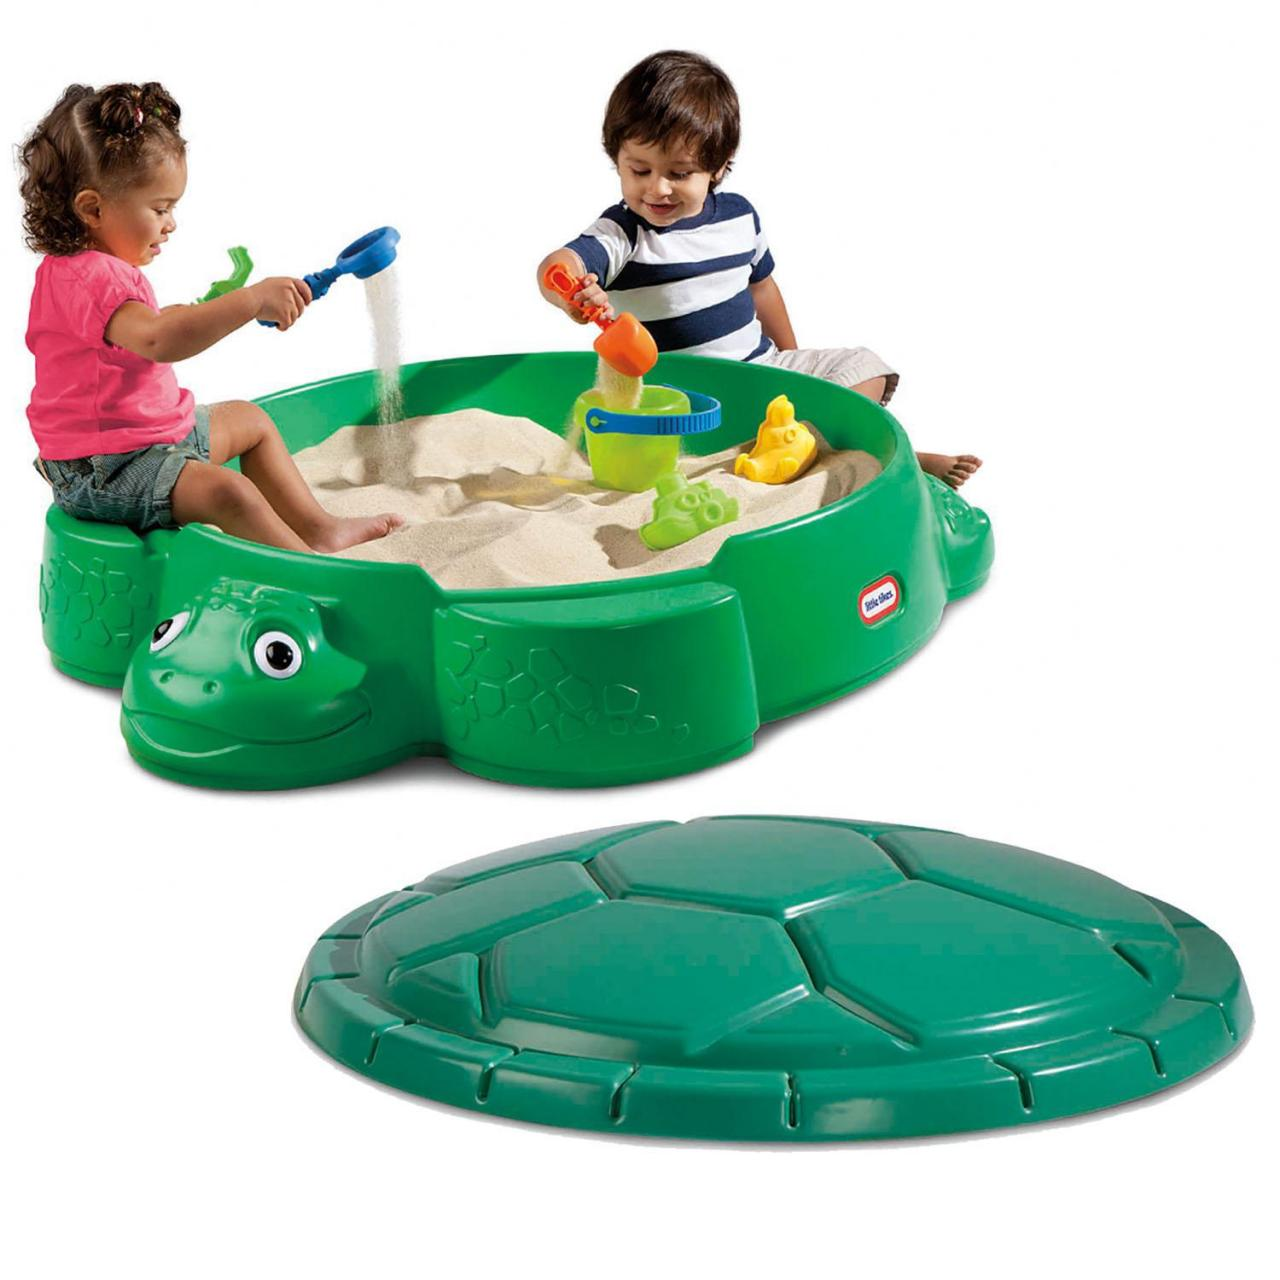 Sand and Water Play Turtle Sandbox